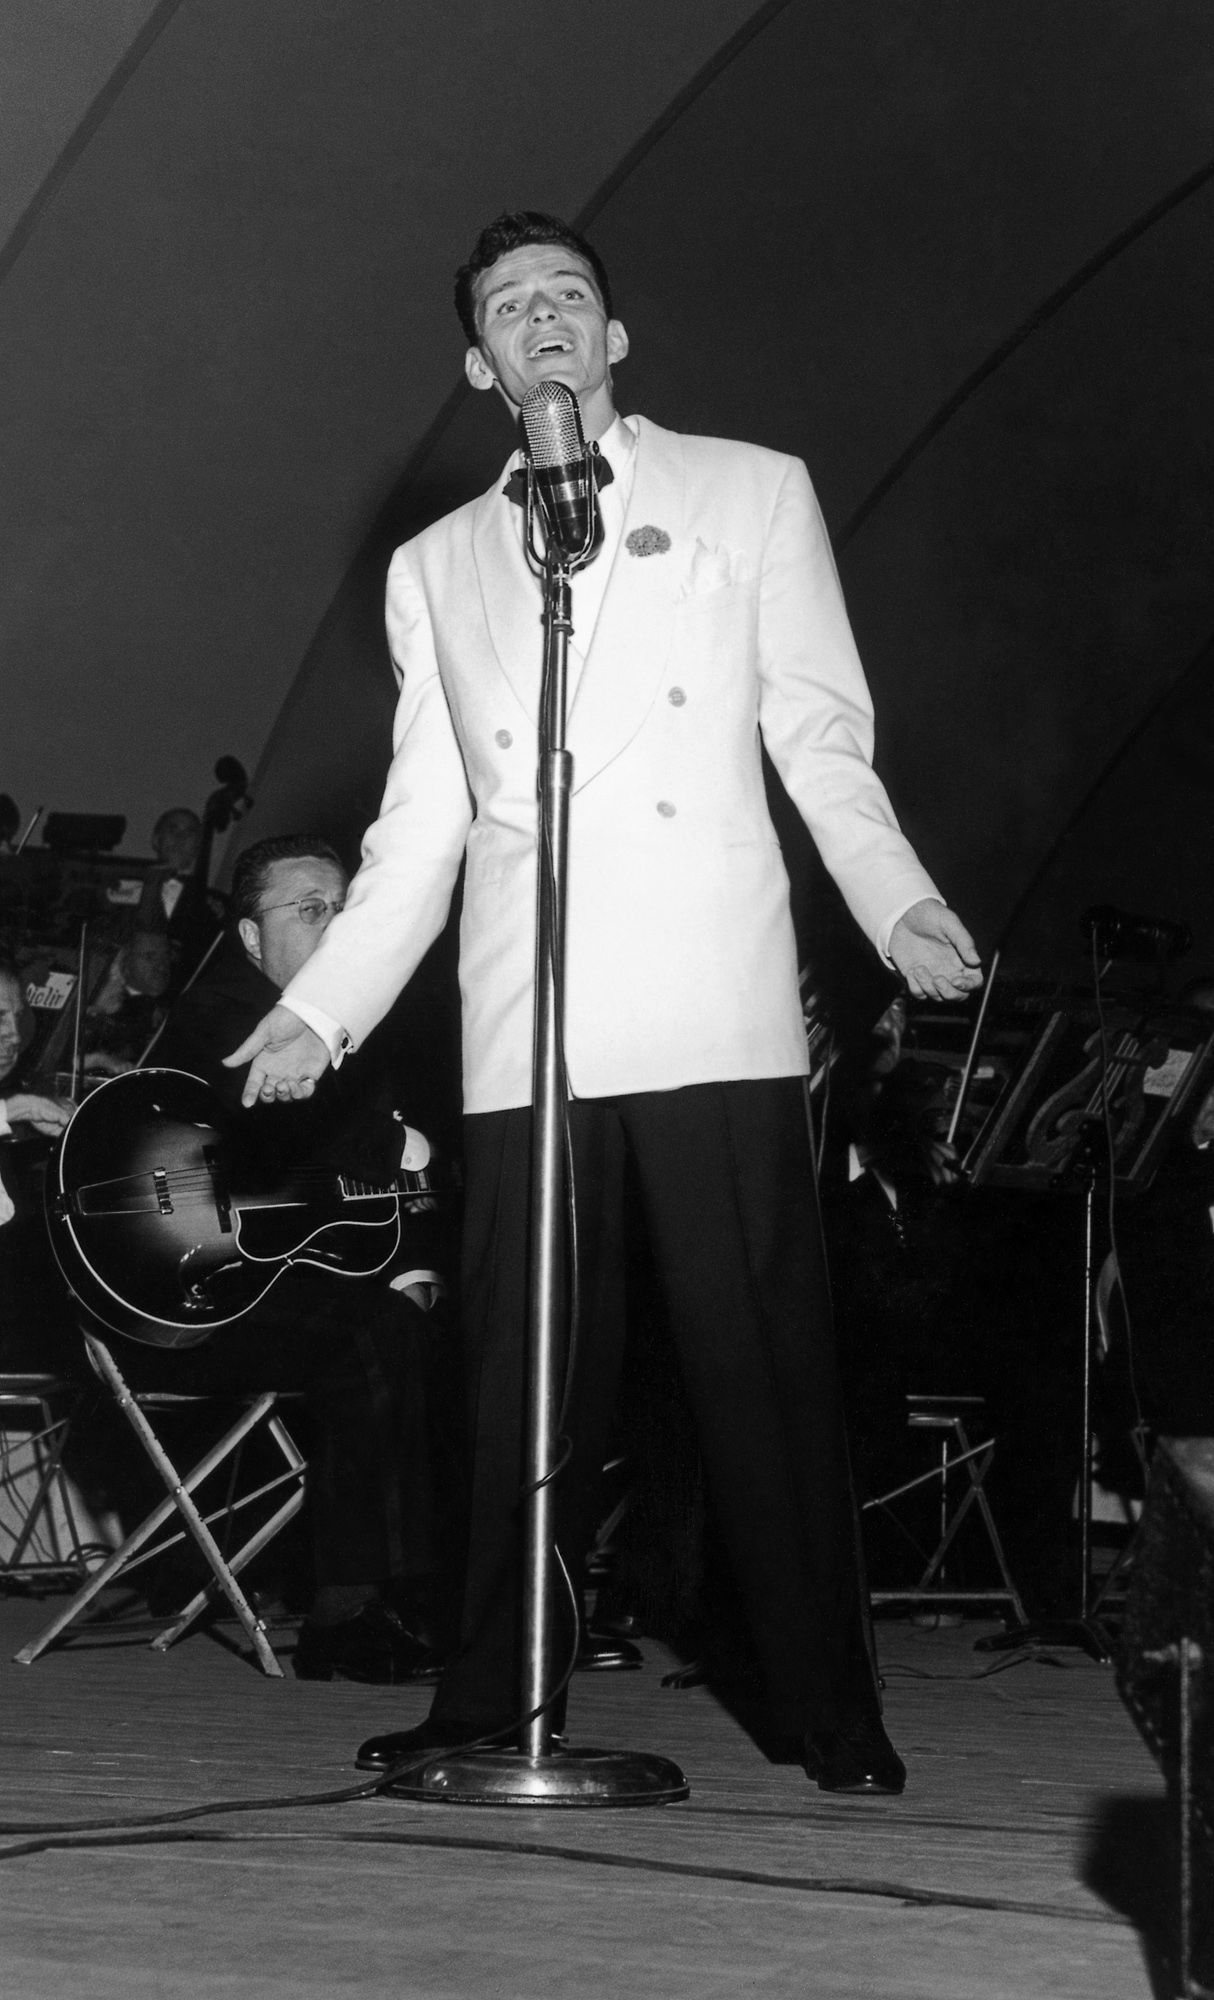 Frank Sinatra's debut at the Hollywood Bowl, 1943. Photo: Music Center Archives, Otto Rothschild Collection.